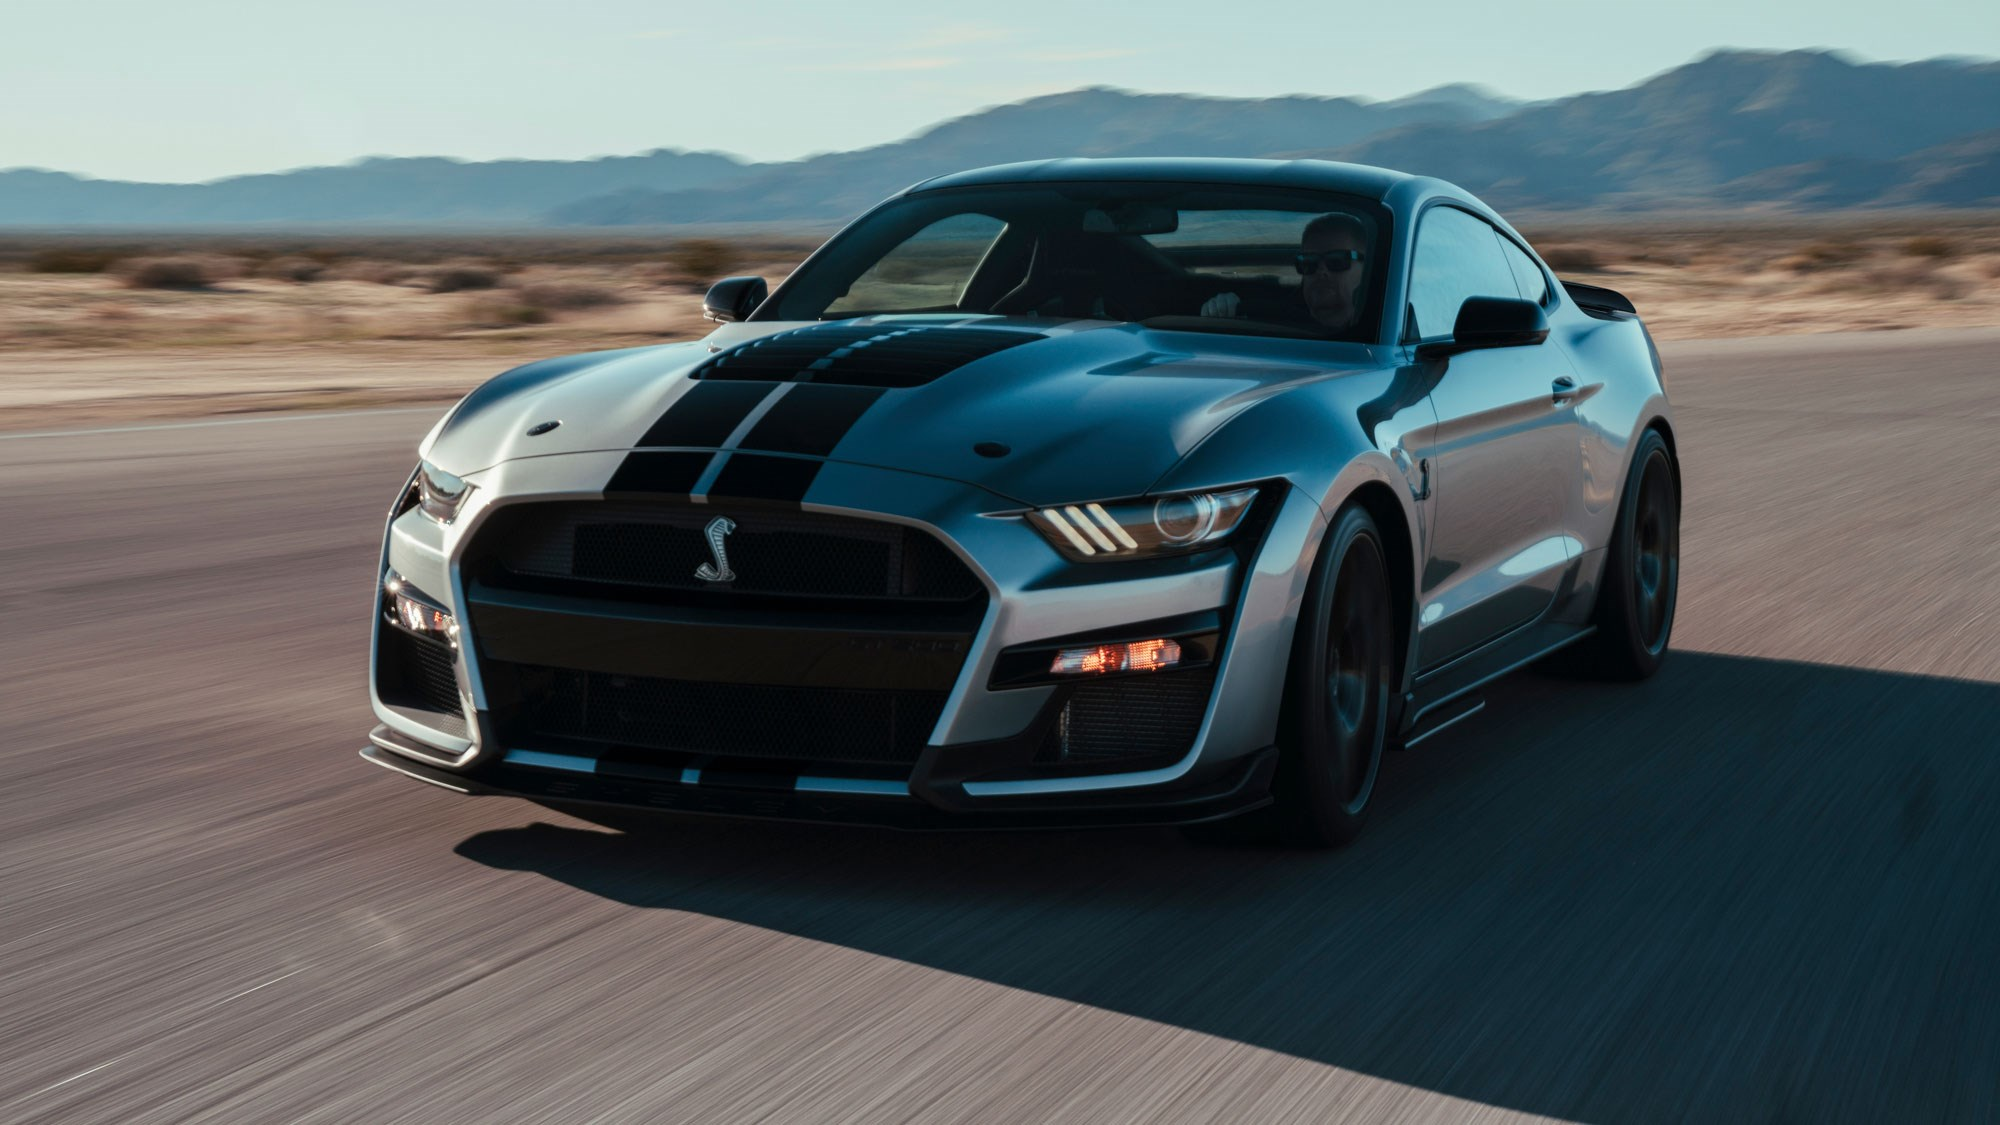 Ford debuts 2020 Mustang Shelby GT500: 'Most powerful street-legal Mustang ever'